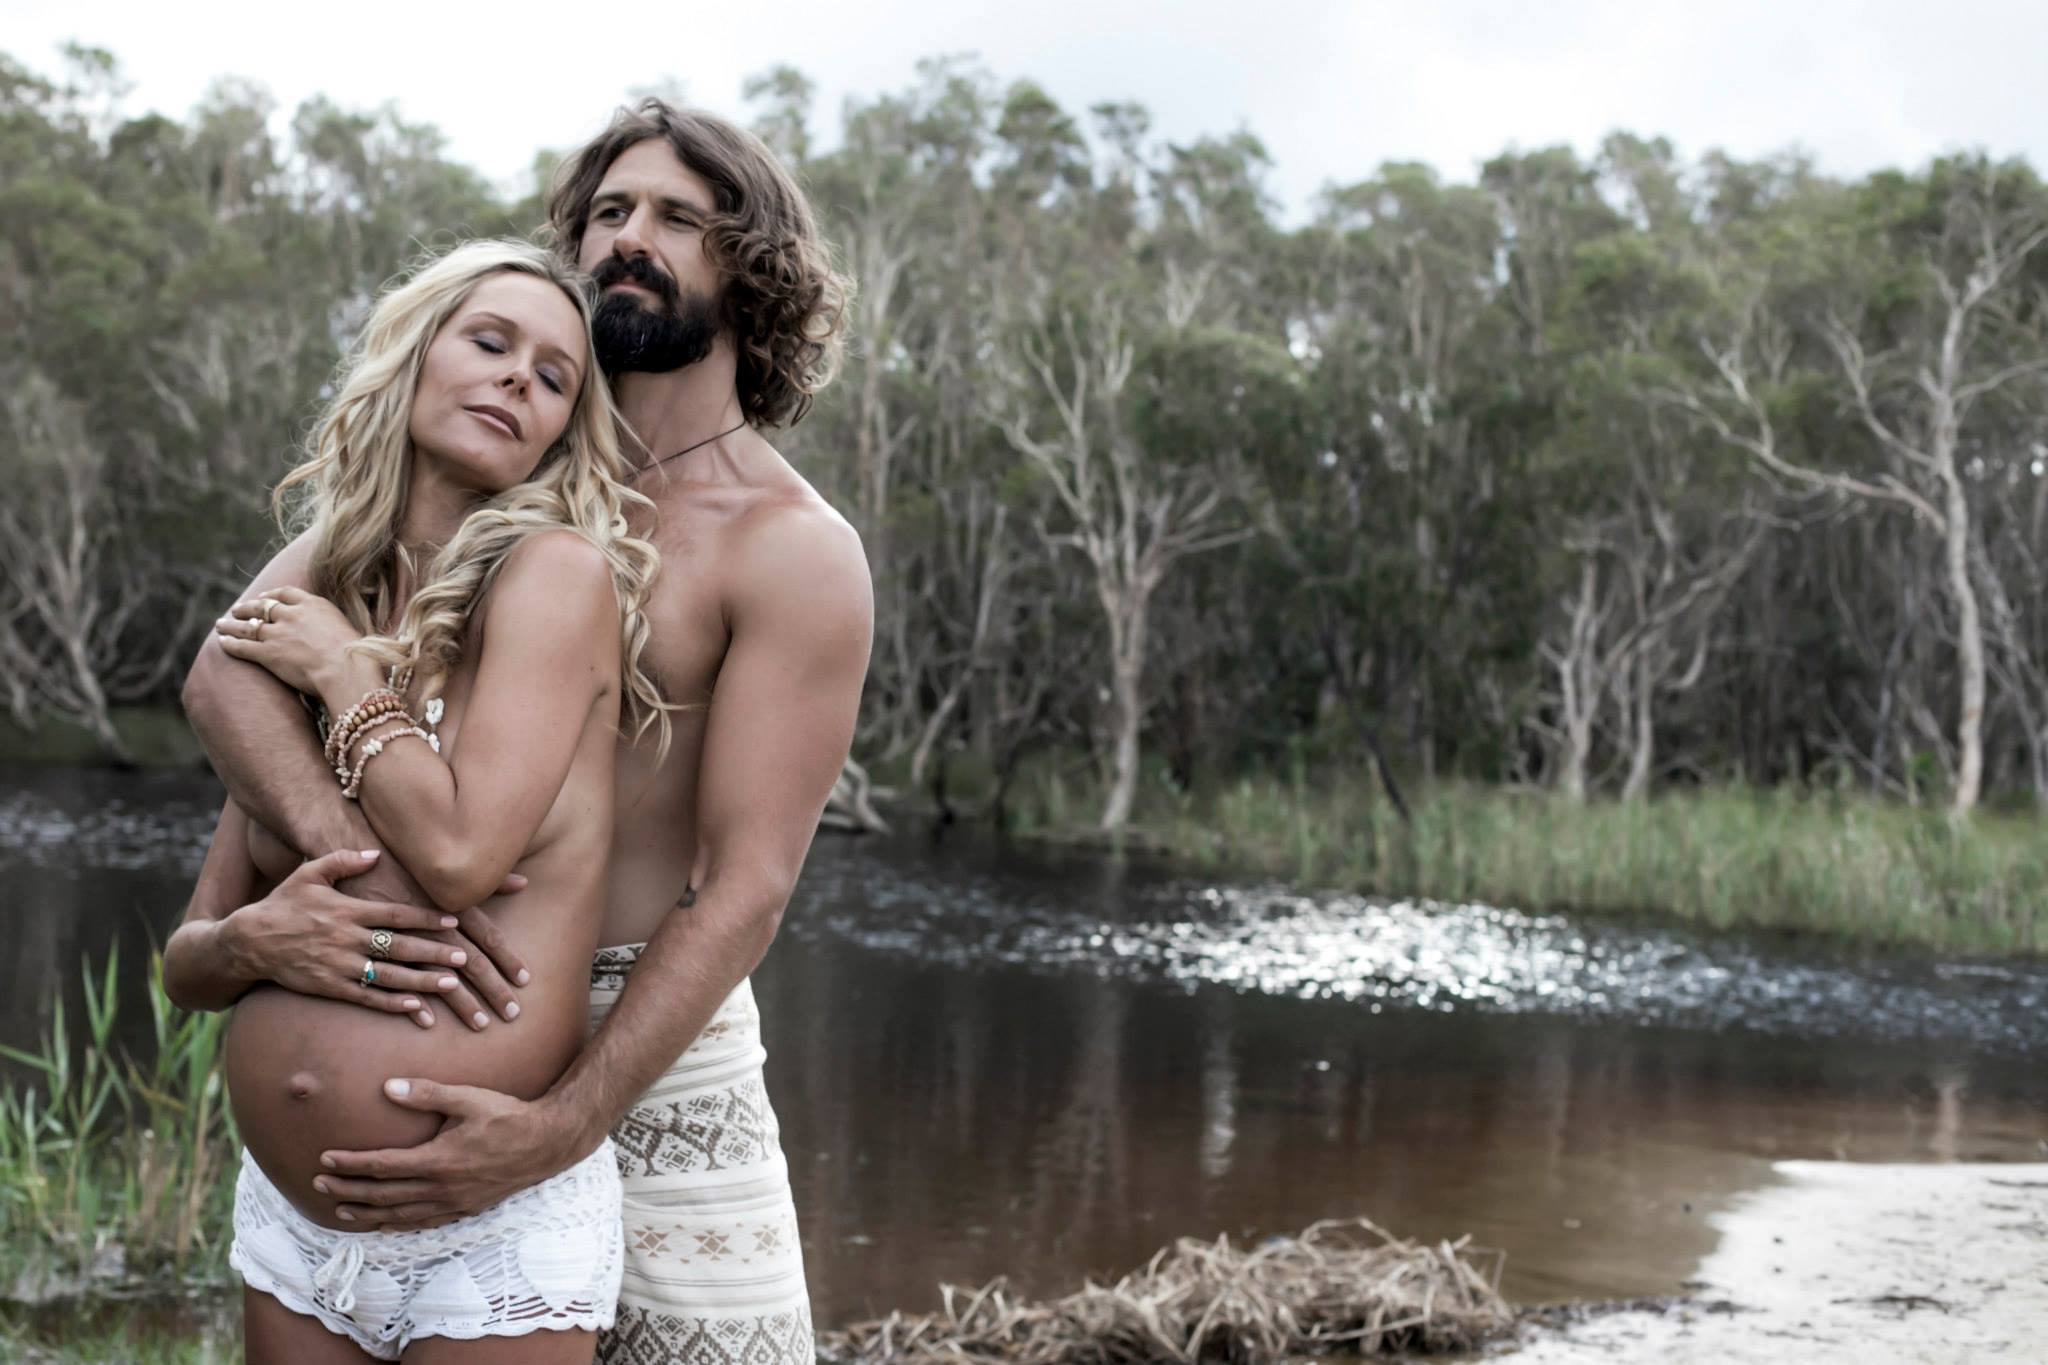 crochet fashion pregnancy photo couple love boho byron bay